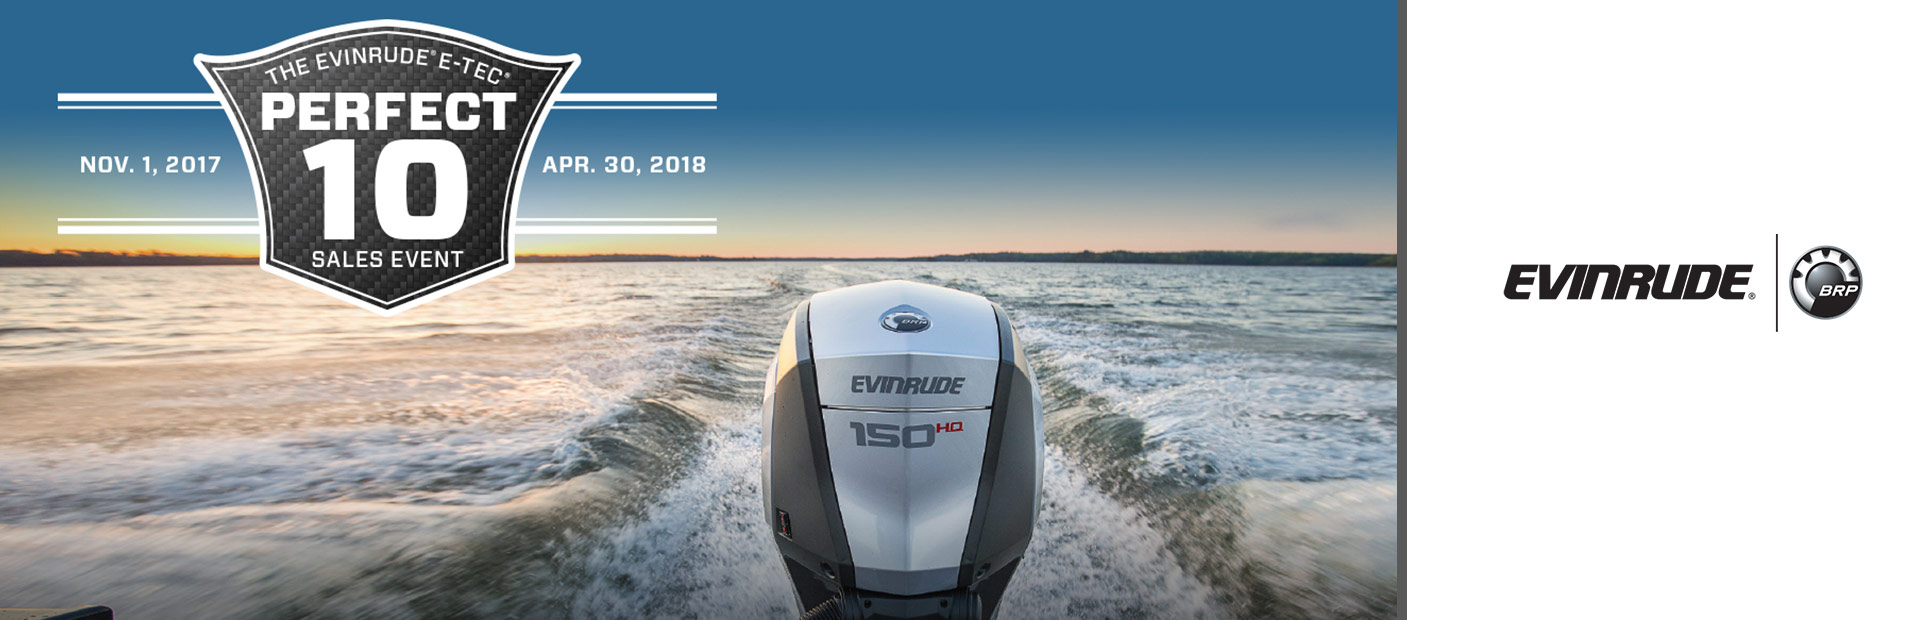 The Evinrude® E-TEC® Perfect 10 Sales Event